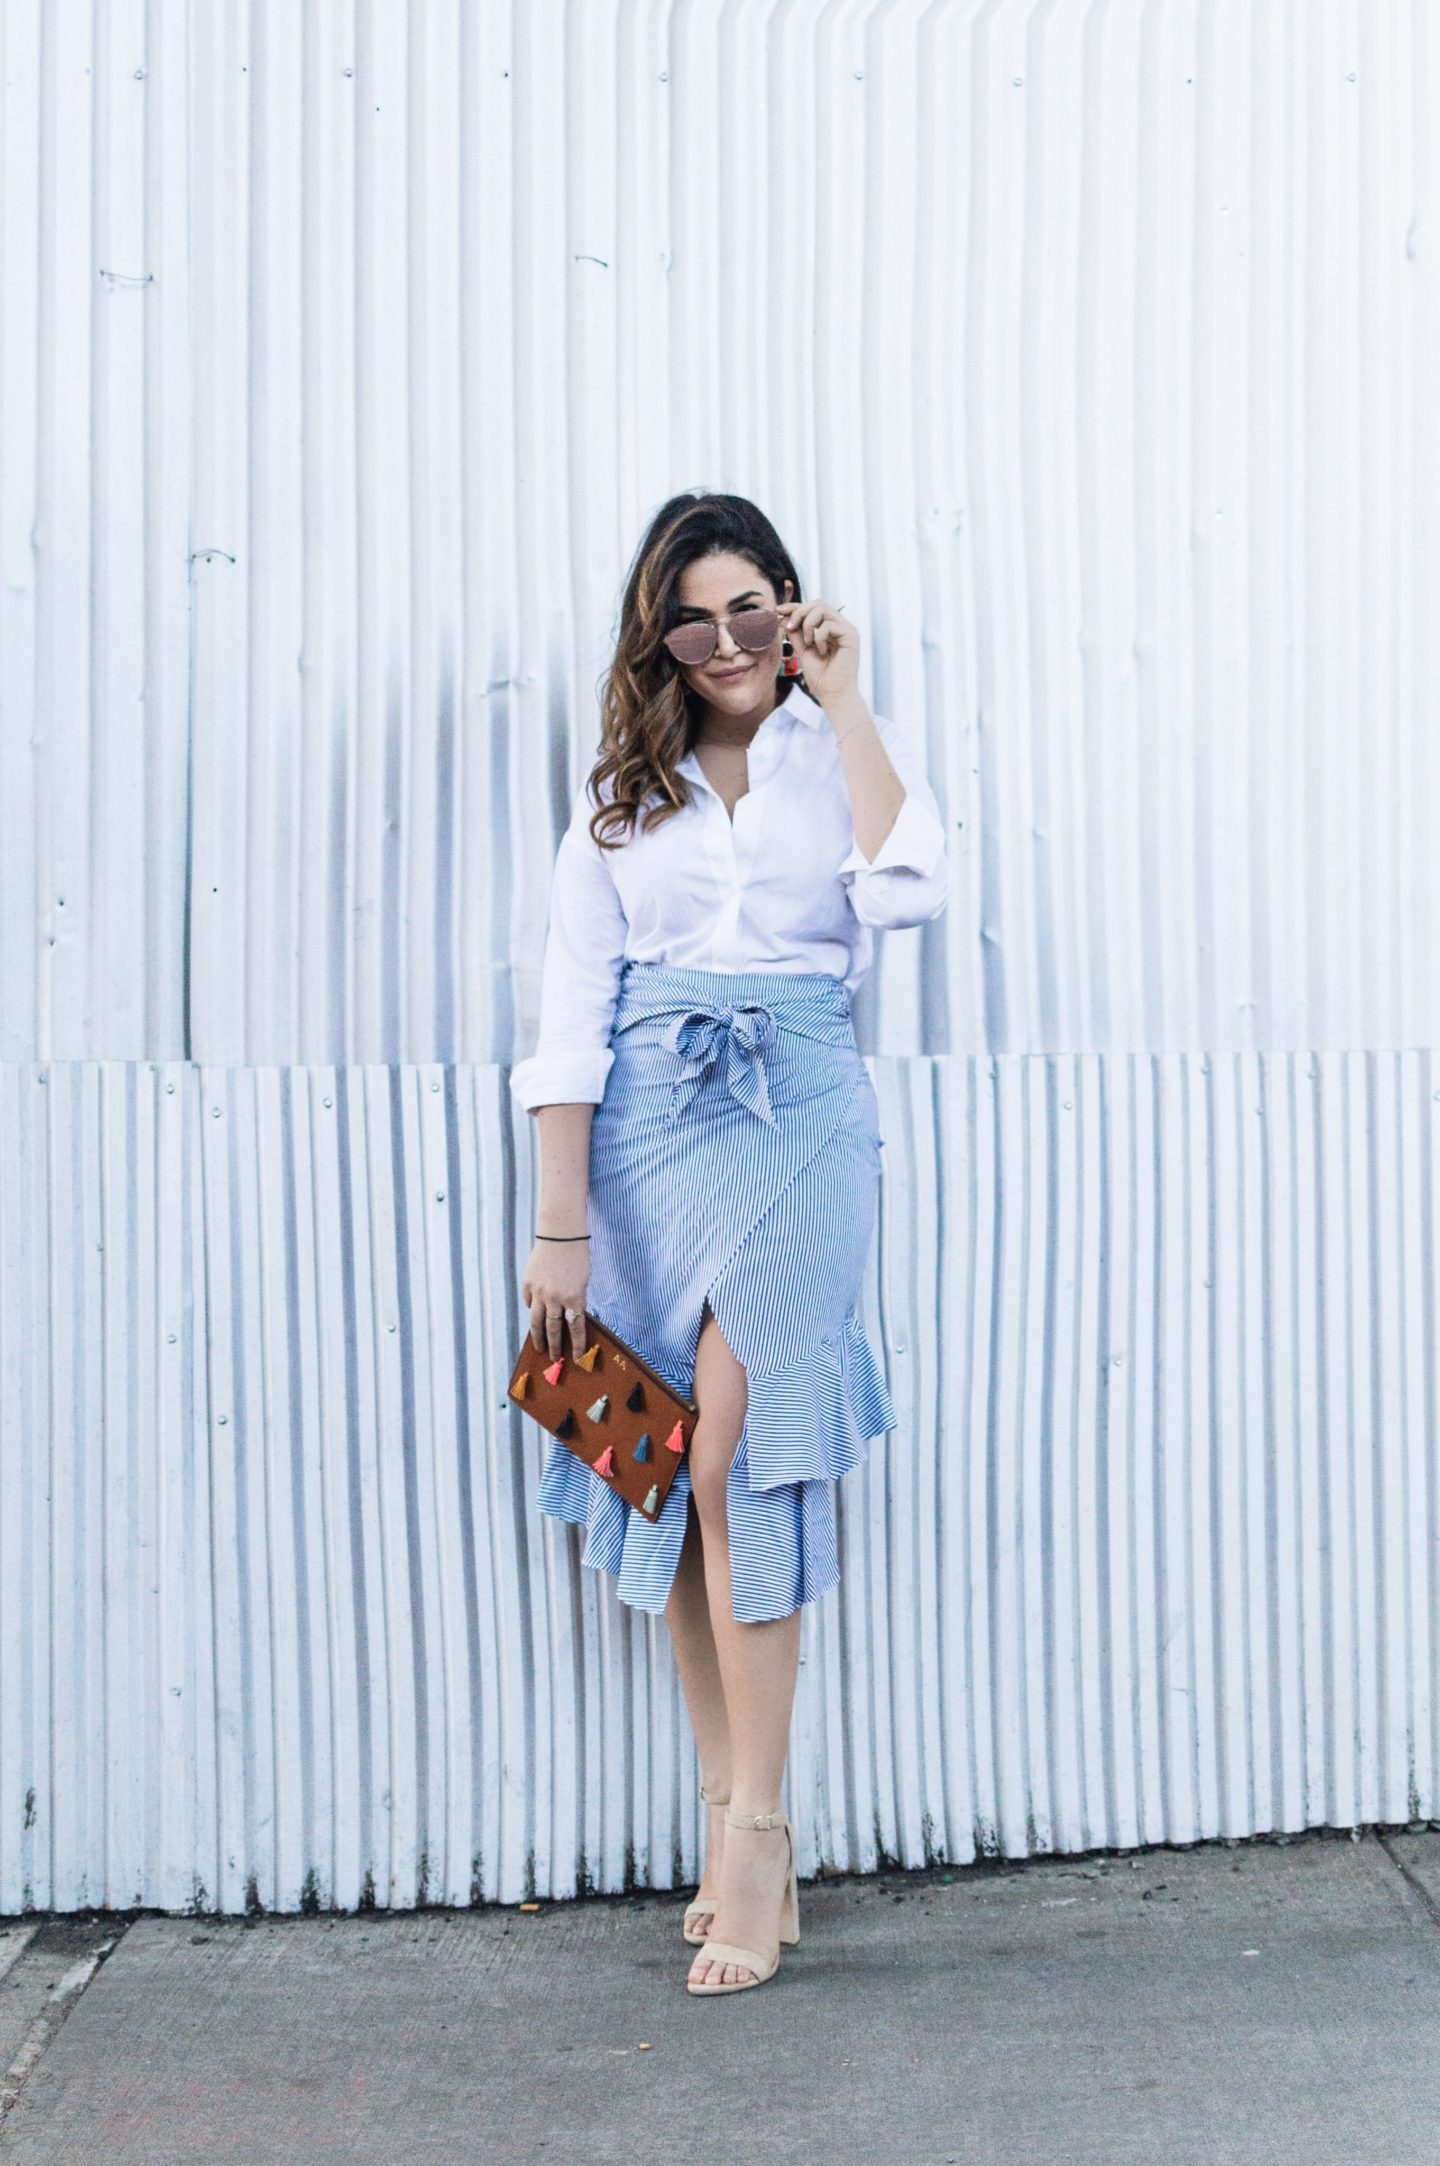 Ruffles, Stripes & Pops of Color